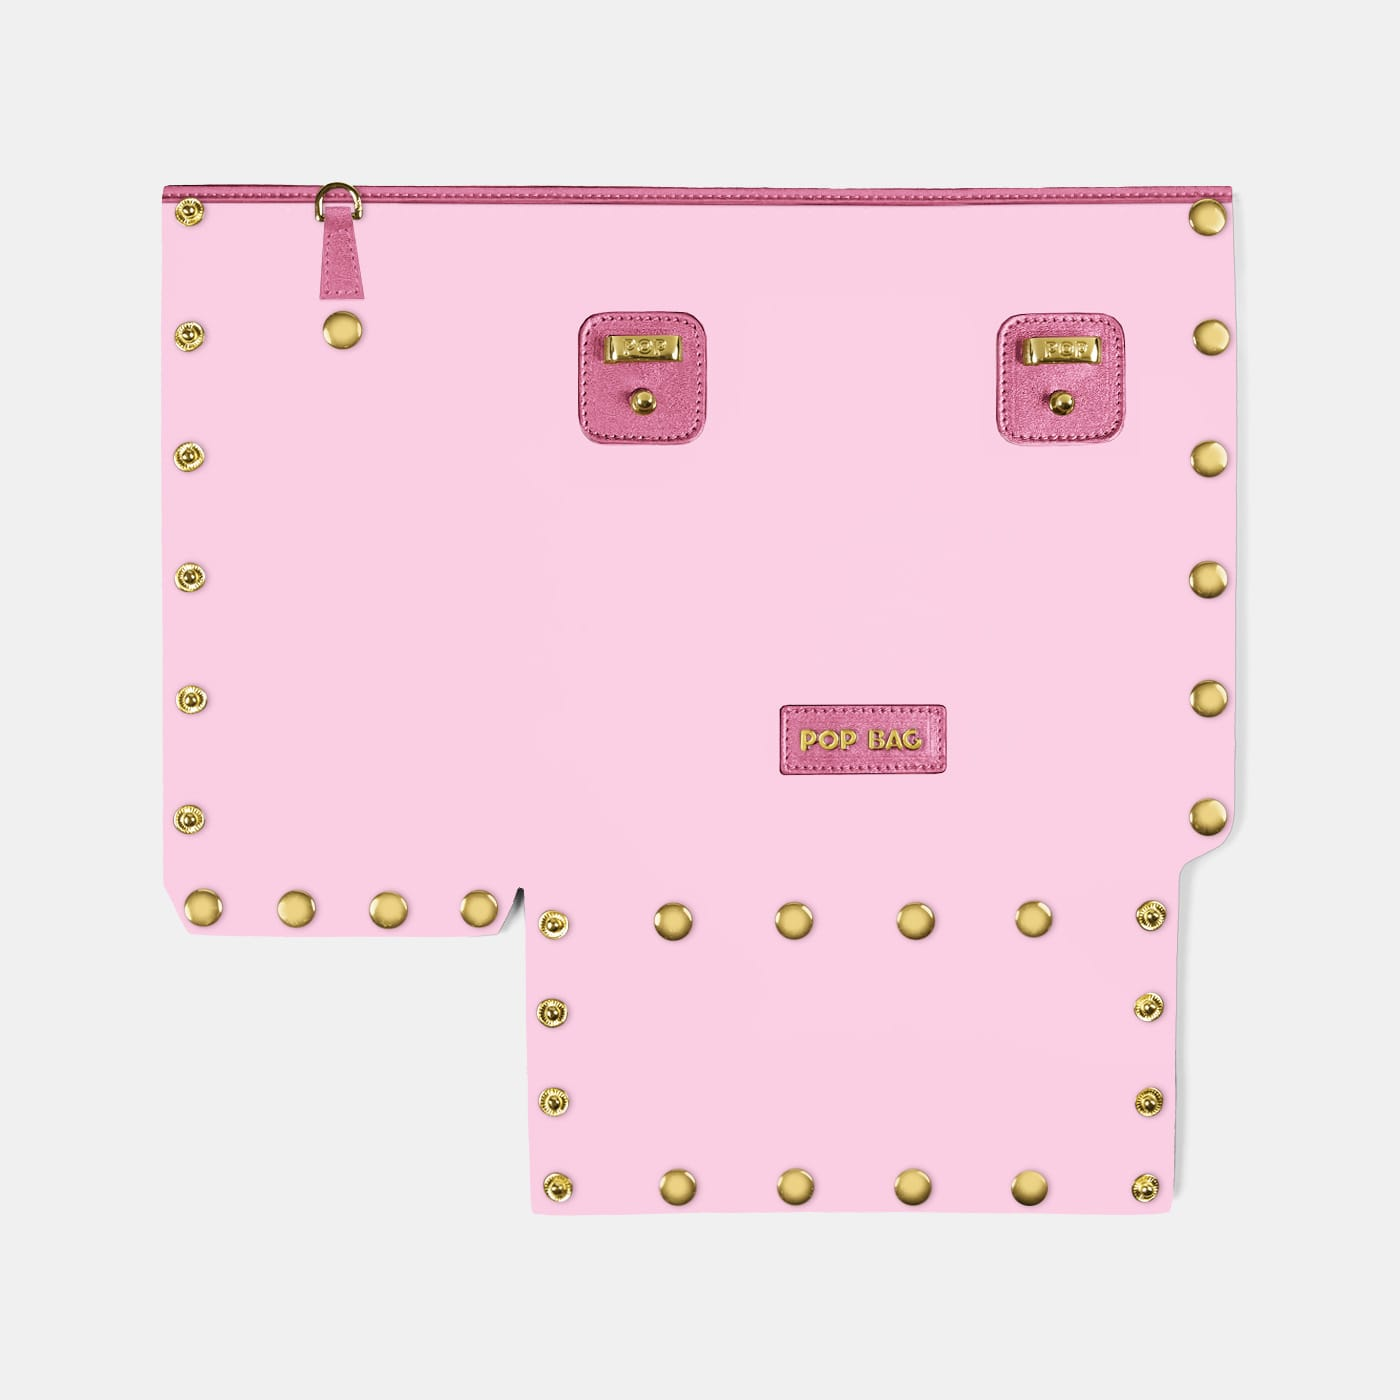 Pop Crystal Front Panel - Pink - Small